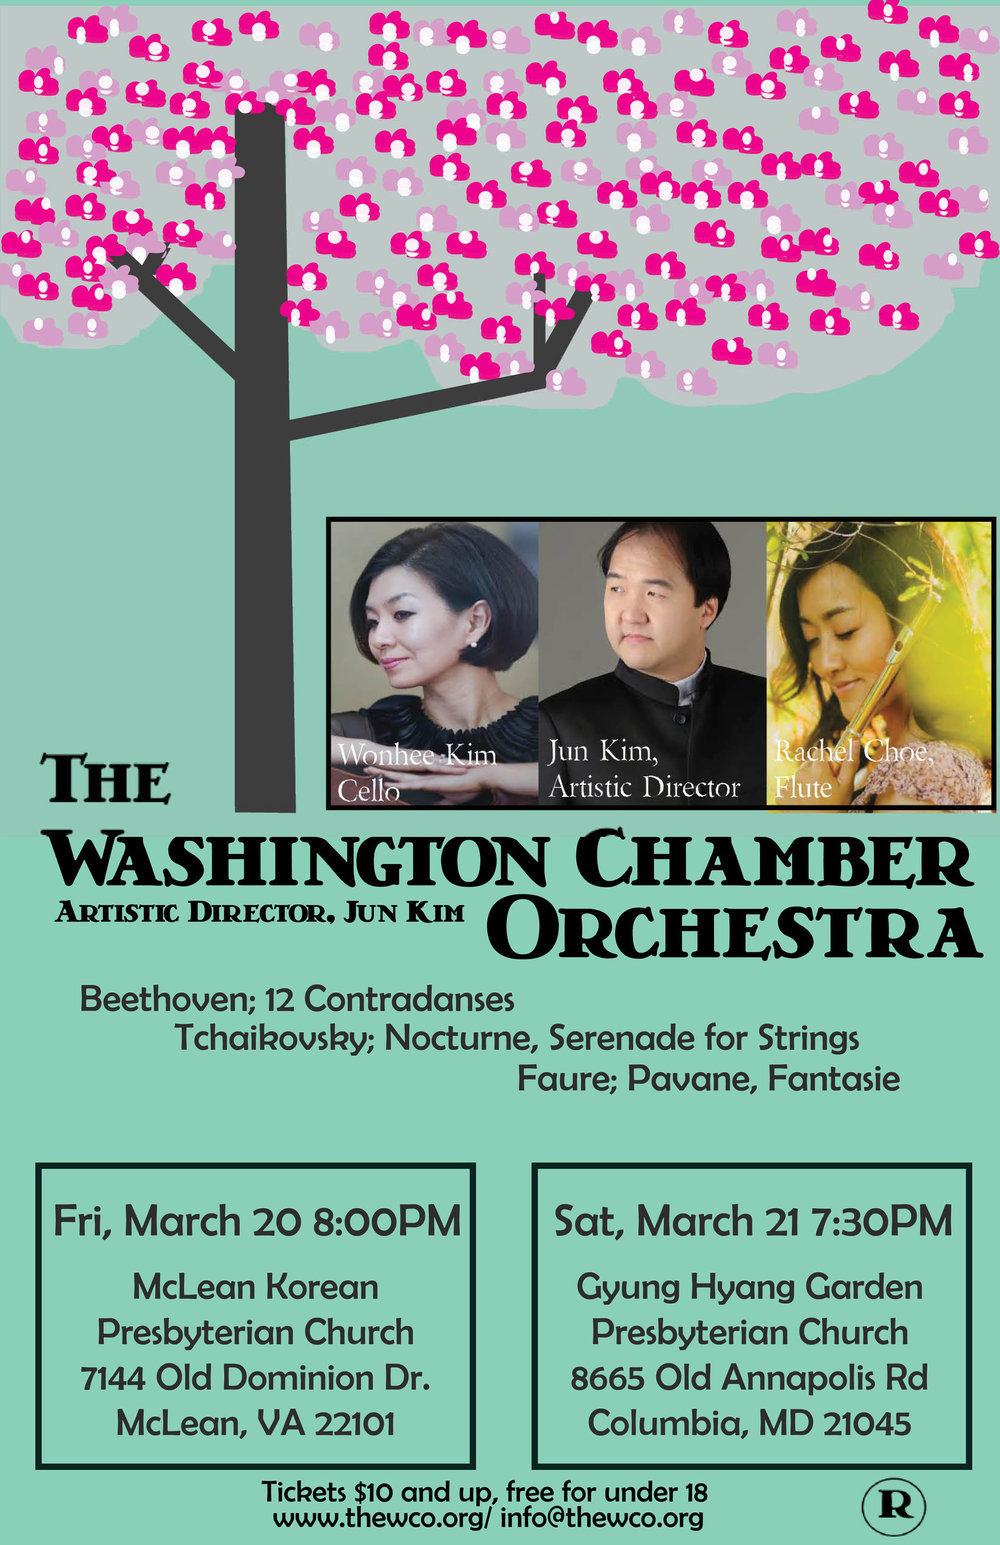 - Choe performed Faure Fantasie with the Washington Chamber Orchestra. The program also includes Beethoven 12 contradanses, Tchaikovsky Nocturne, Serenade for strings and Faure's Pavane. The concerts were held at McLean Presbyterian Church on Friday March 20, 2015 at 8pm and at Garden Presbyterian Church on Saturday March 21, 2015 at 7:30pm.